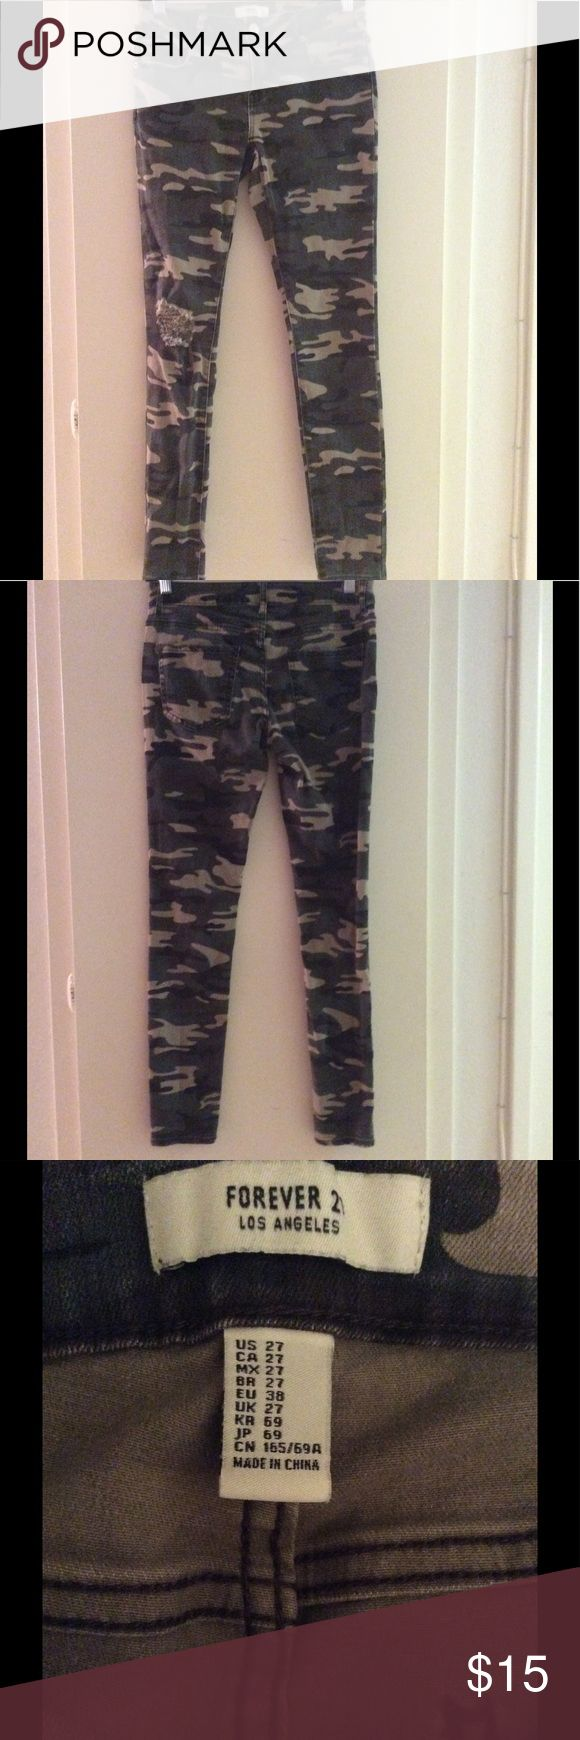 Forever 21 camouflage skinny jeans Super cute 😍 great fit, rarely worn. Great condition Forever 21 Jeans Skinny